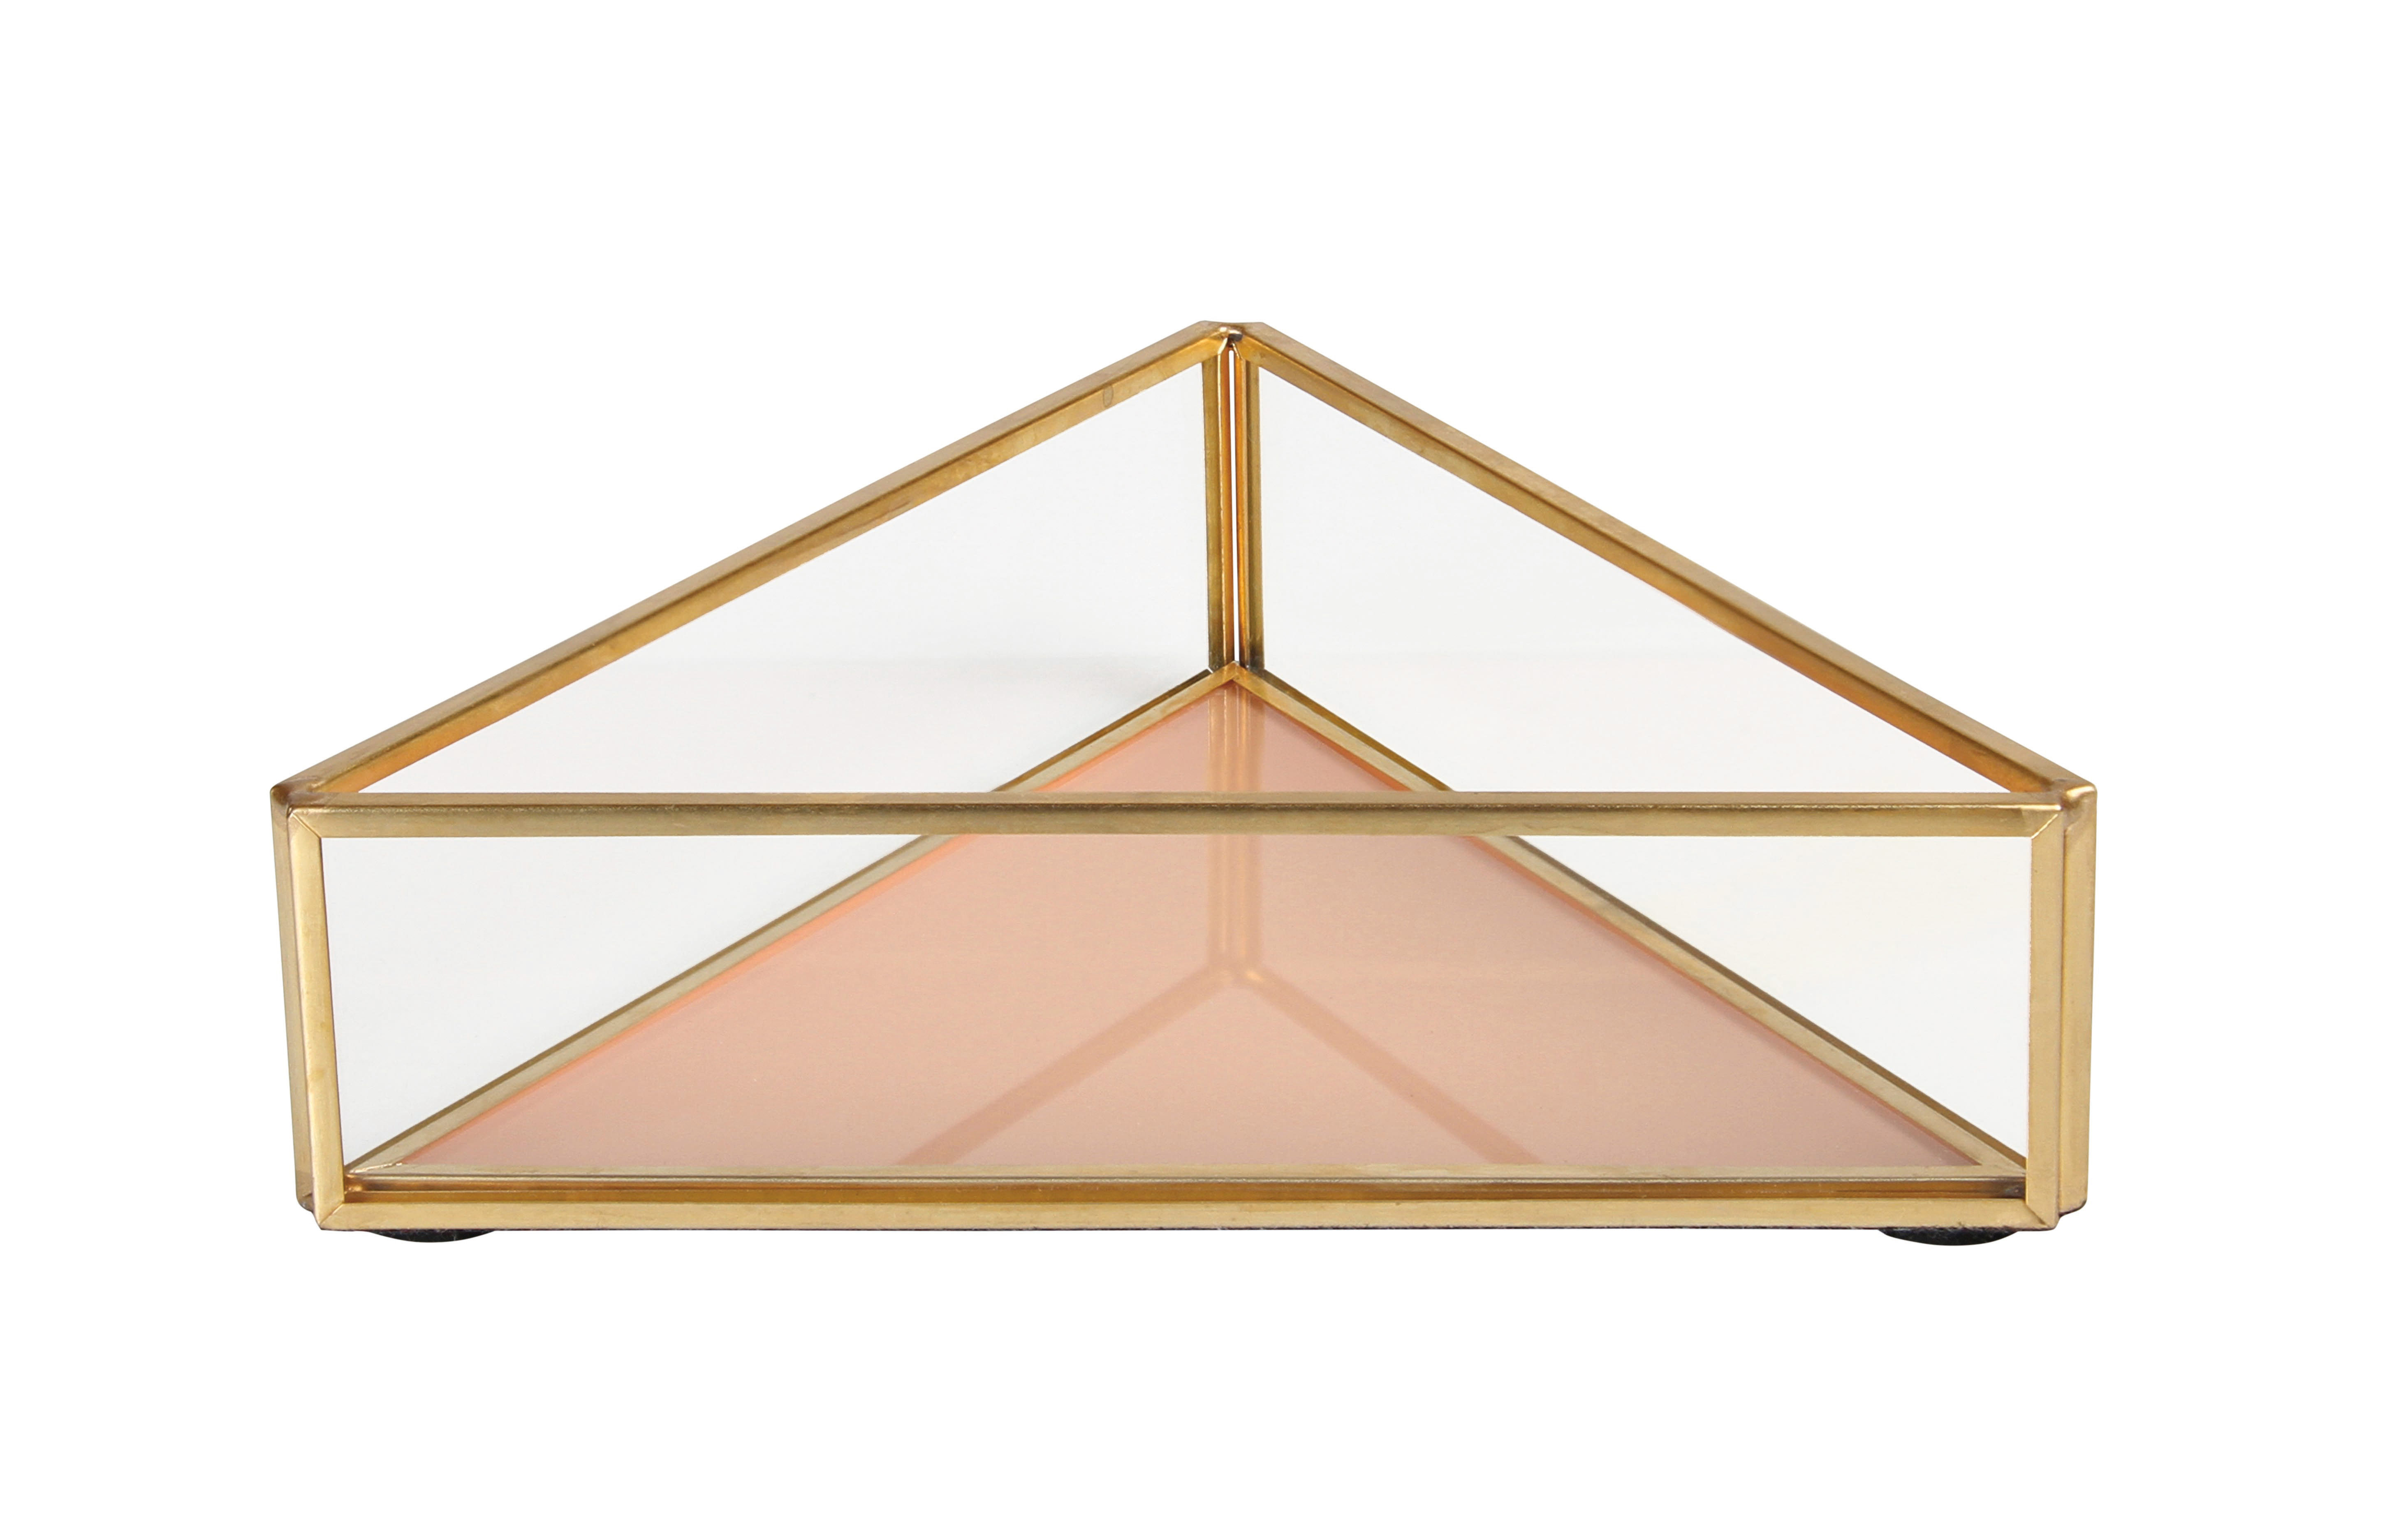 Decoration - Decorative Boxes - Small dish - / 16 x 14 cm - Glass & metal by & klevering - Triangle / Peach - Brass finish metal, Glass